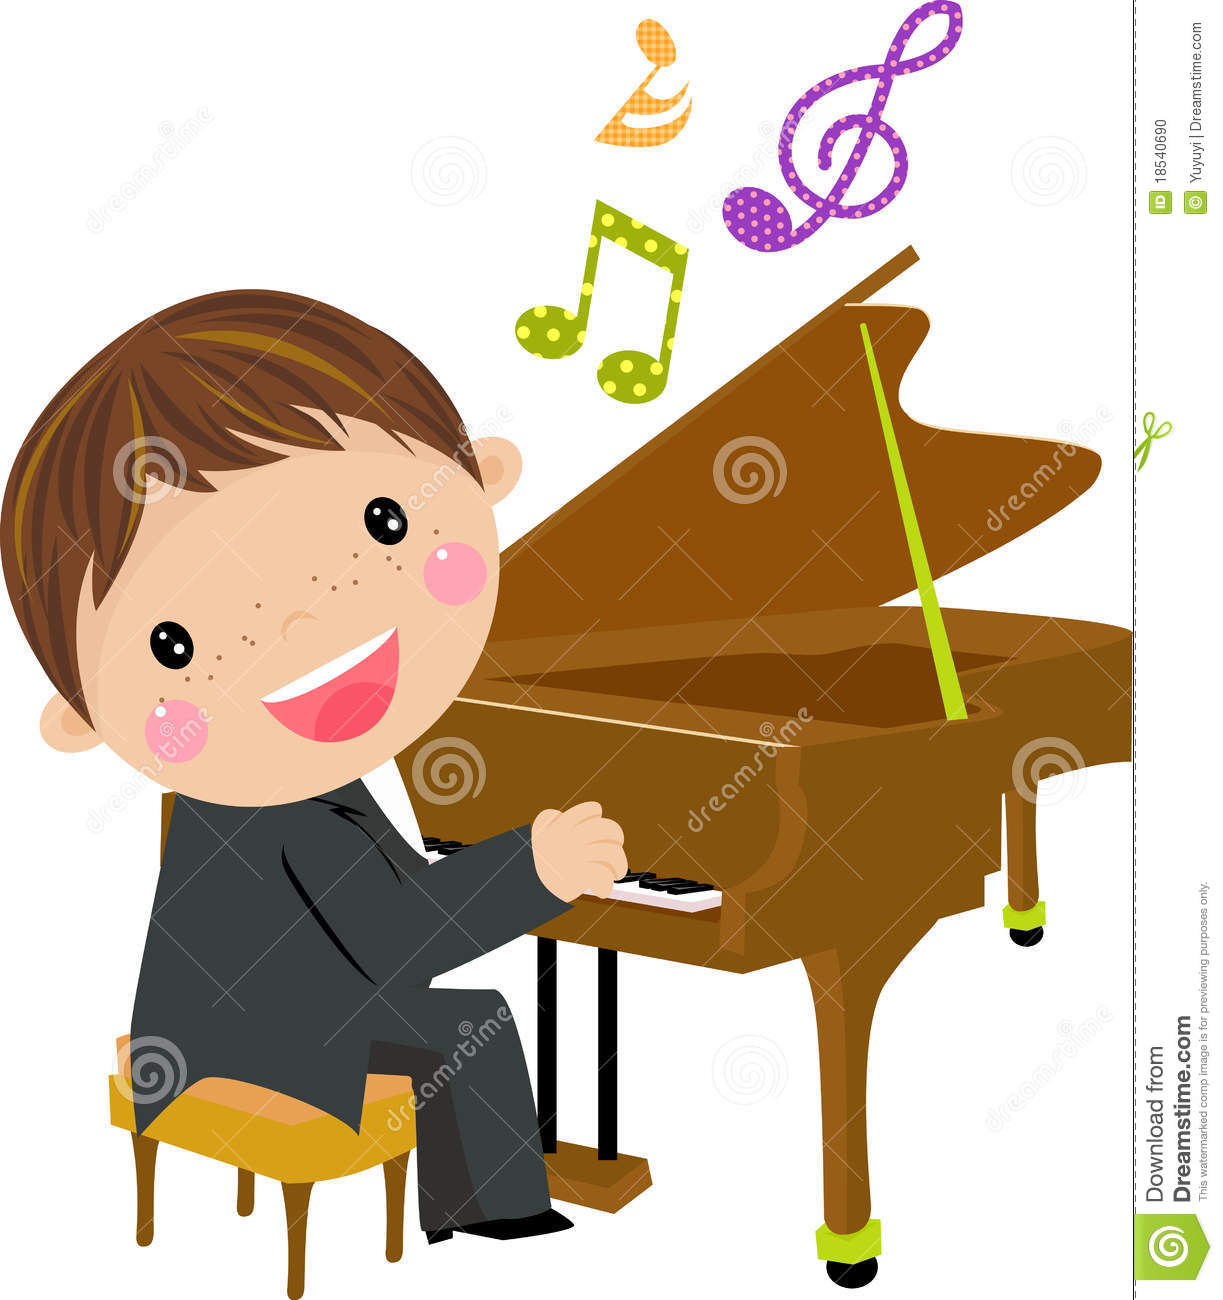 Playing piano clipart vector royalty free Playing piano clipart 8 » Clipart Station vector royalty free